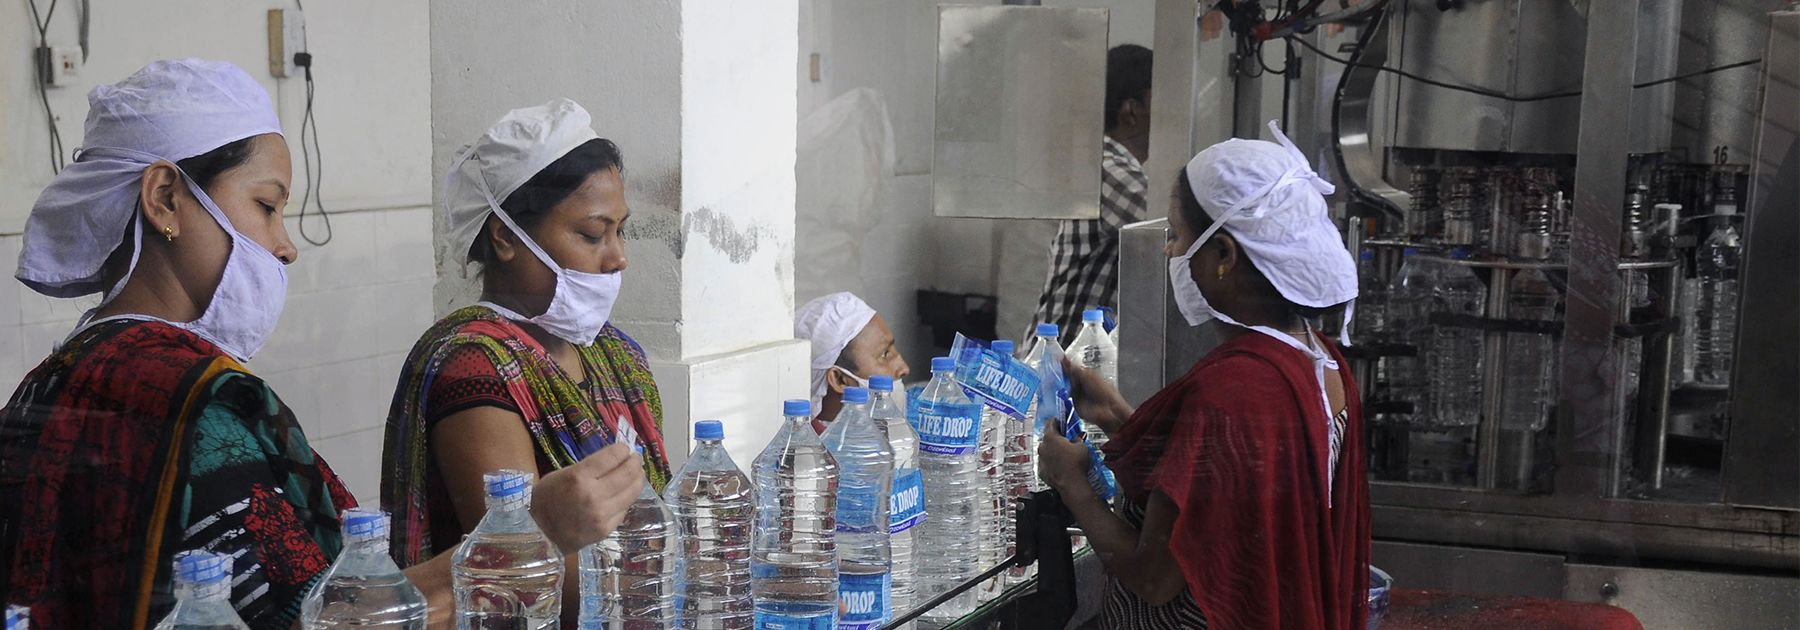 Workers add labels onto bottles of drinking water at a bottling unit on World Water Day in Agartala. (ARINDAM DEY/AFP/Getty Images)